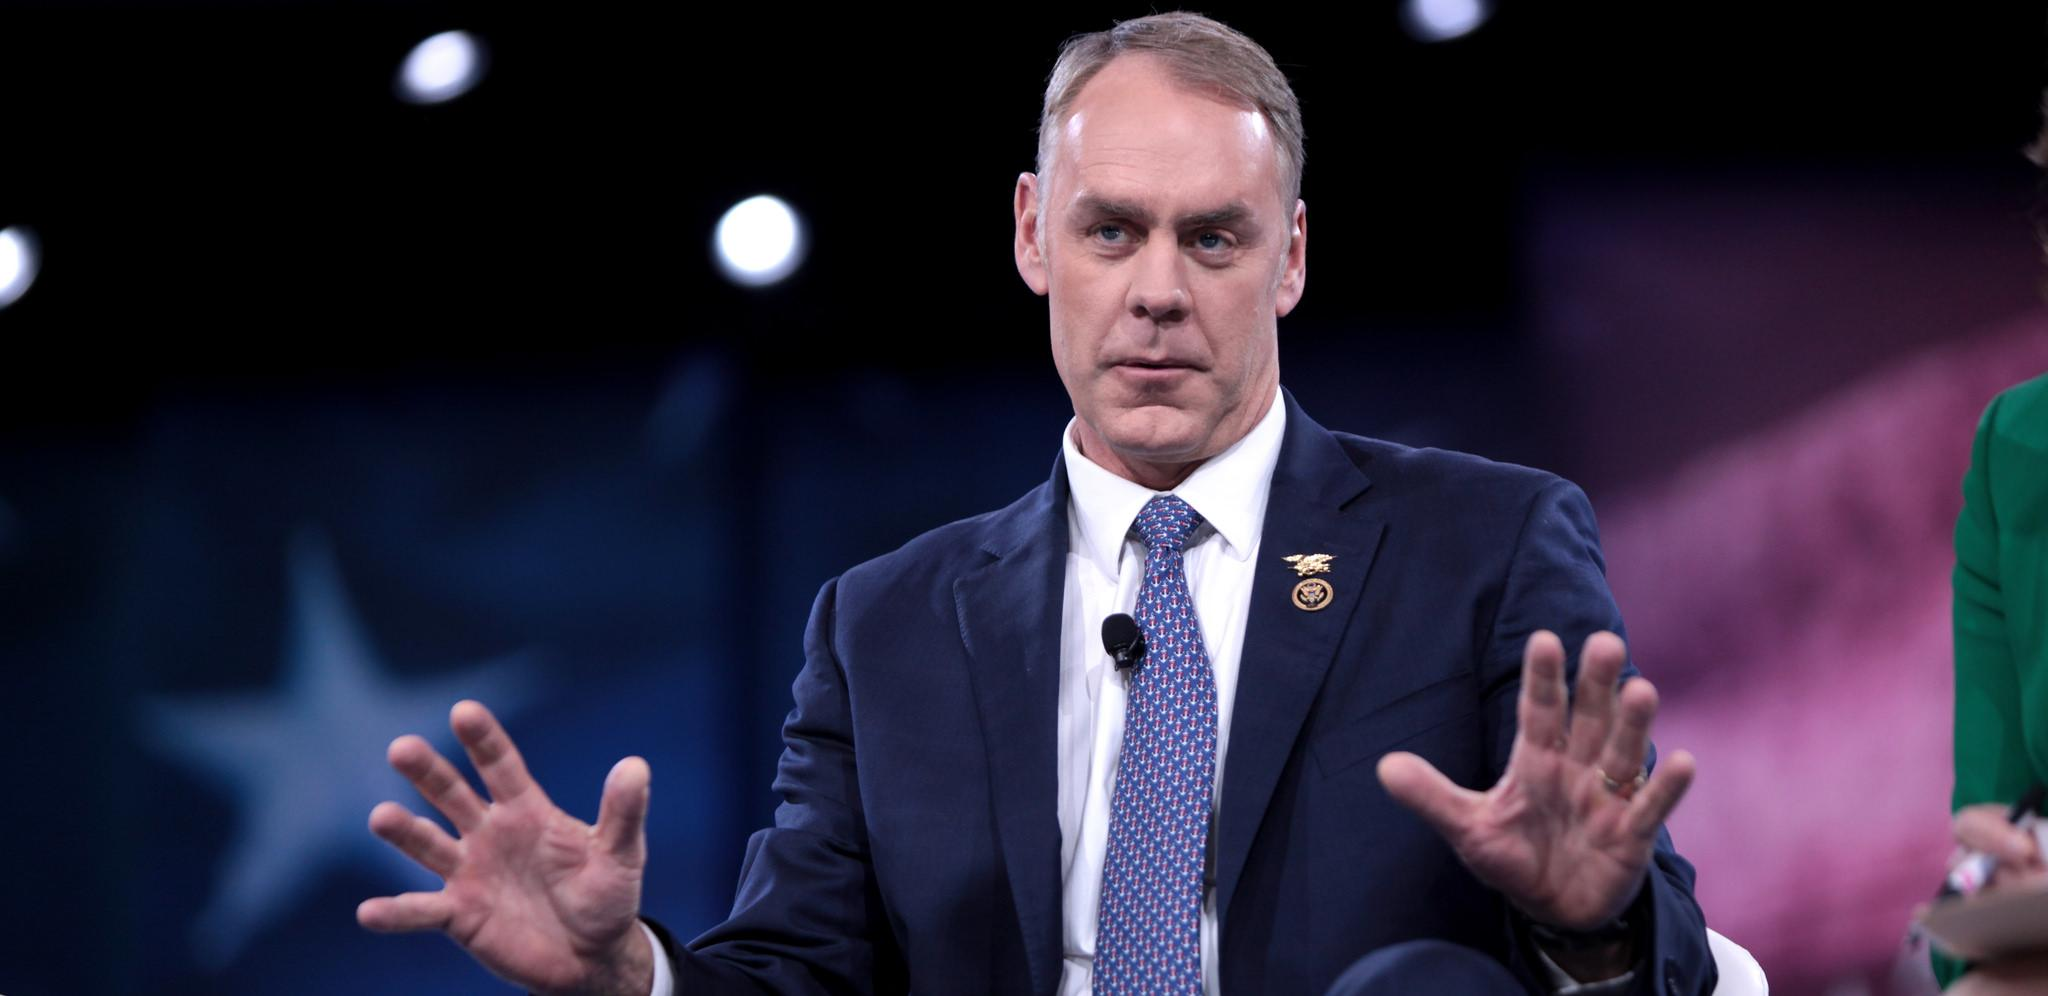 What You Need To Know About Ryan Zinke Trumps Pick For Interior